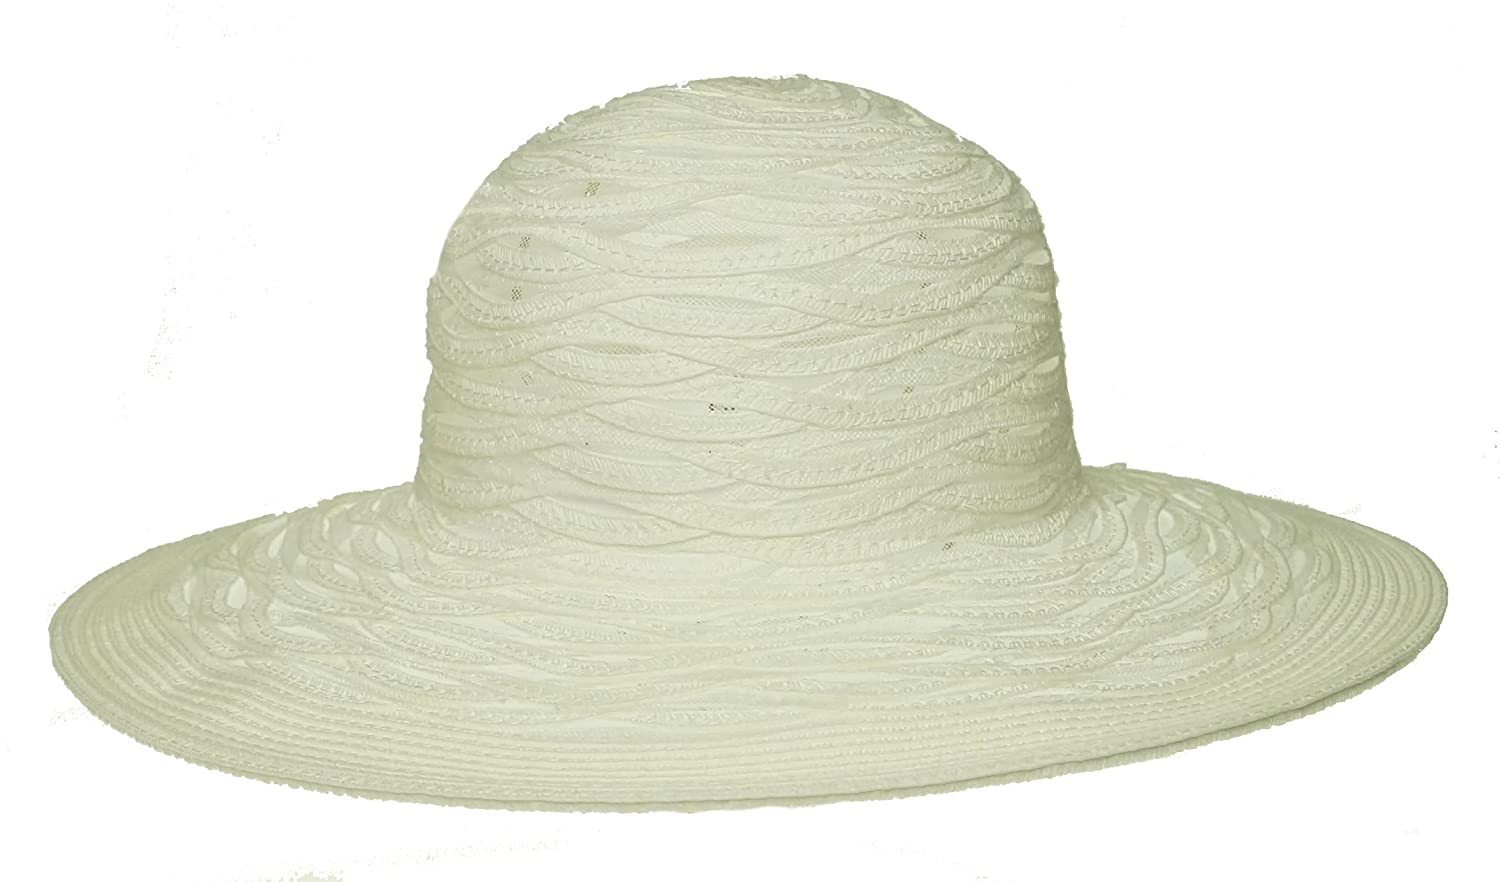 fd2ed12ad63 Nine West Sheer Open Super Floppy Hat White ONE SIZE at Amazon Men s  Clothing store